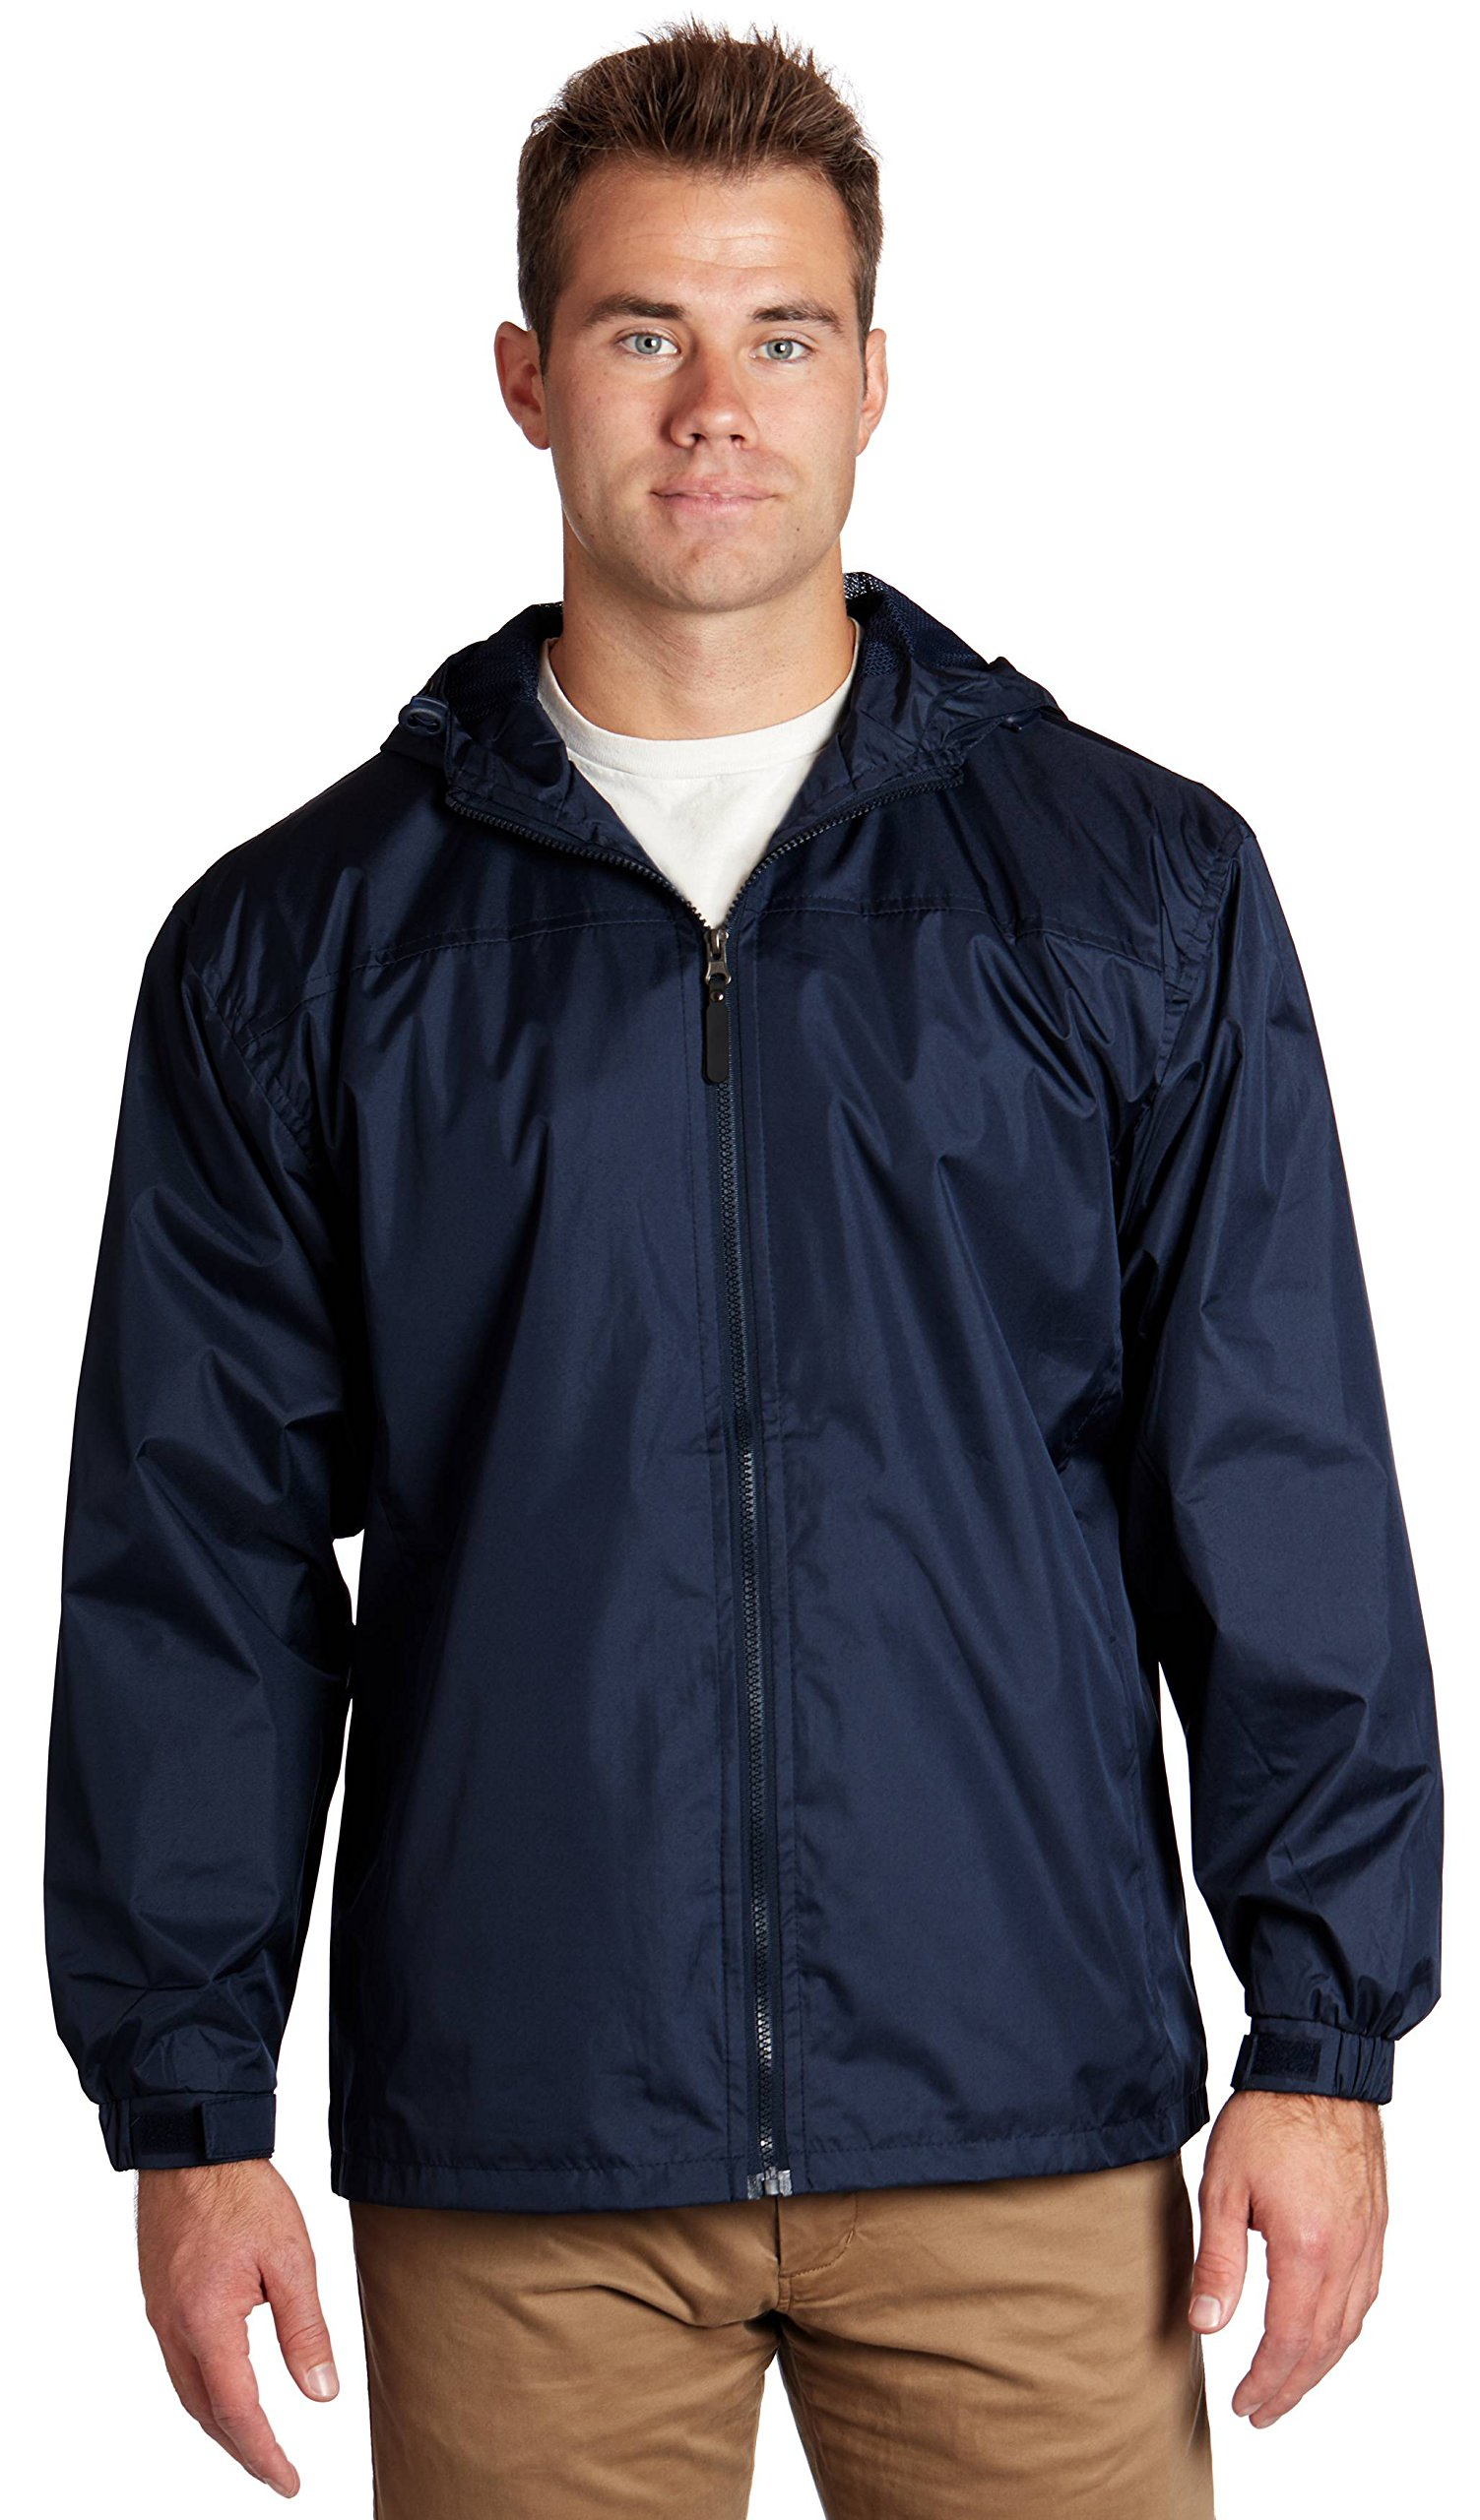 Equipment De Sport, USA Wholesale Unisex Polyester Hooded Lined Windbreaker Jackets - Navy, Medium by Equipment De Sport USA